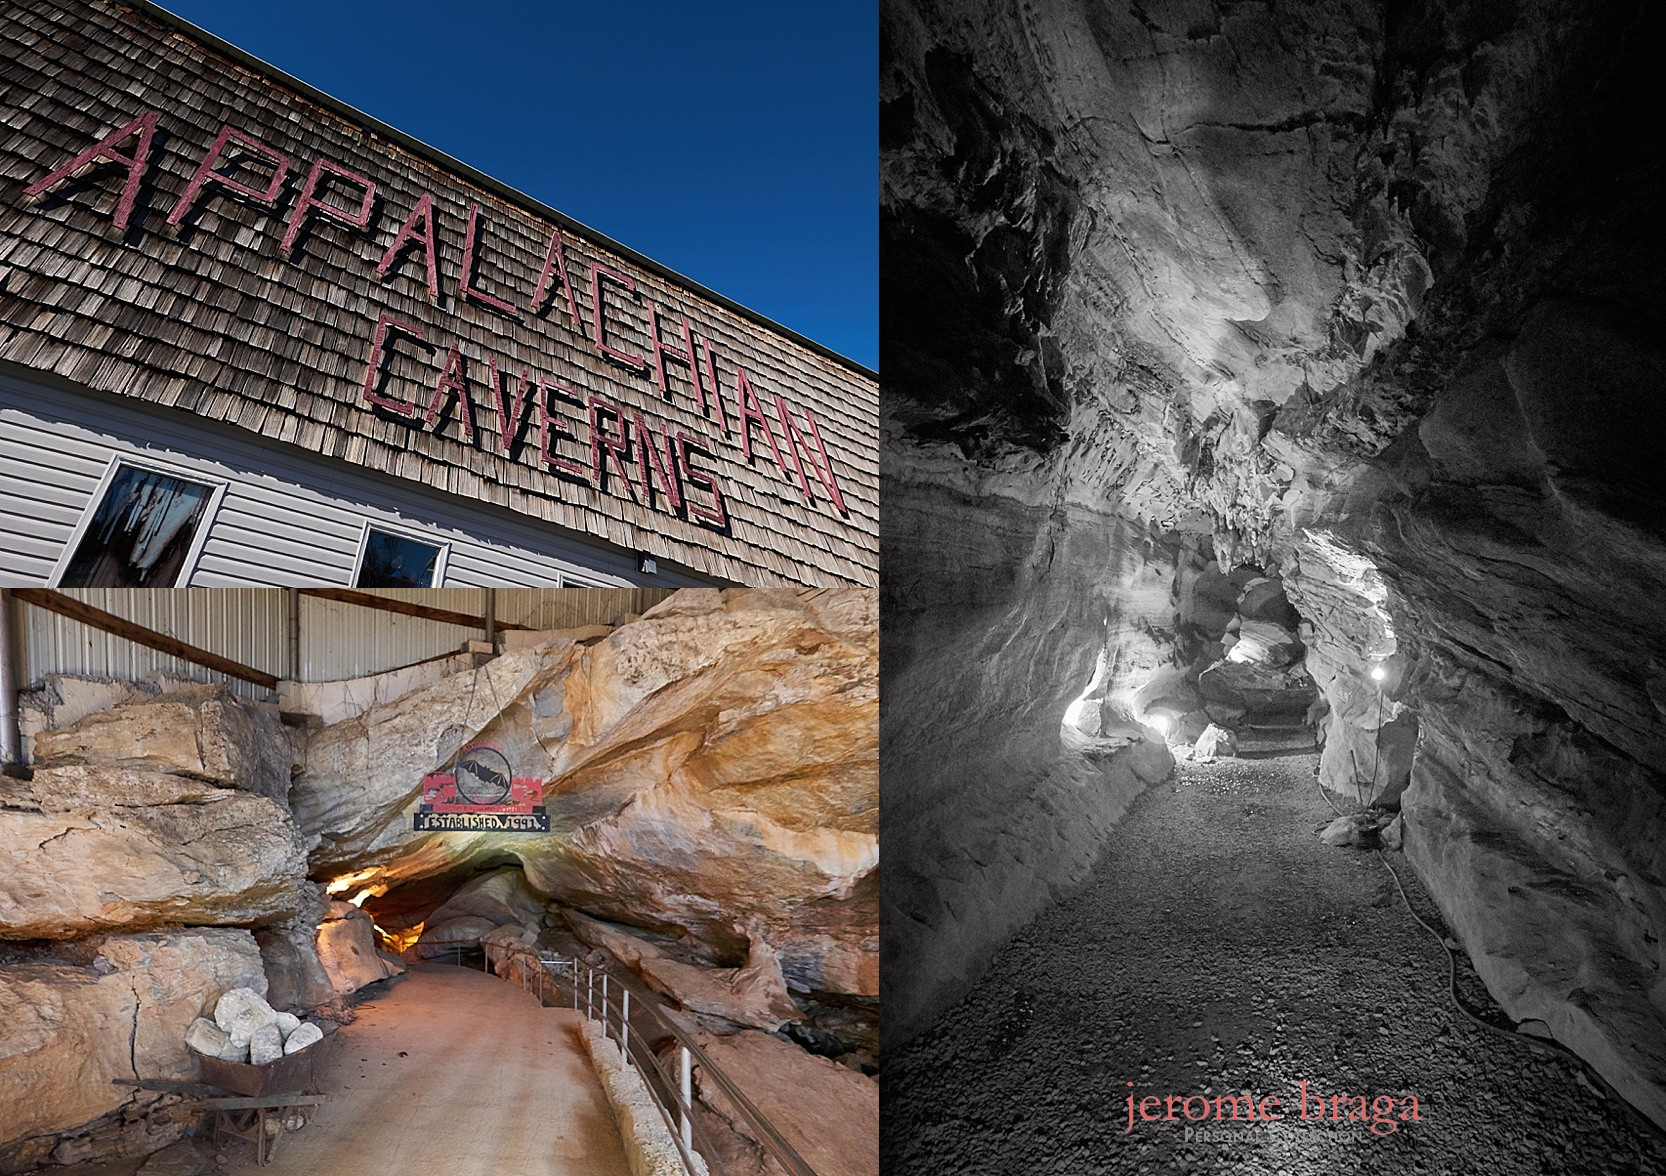 Tennessee Caverns, Appalachian Caverns, Photos